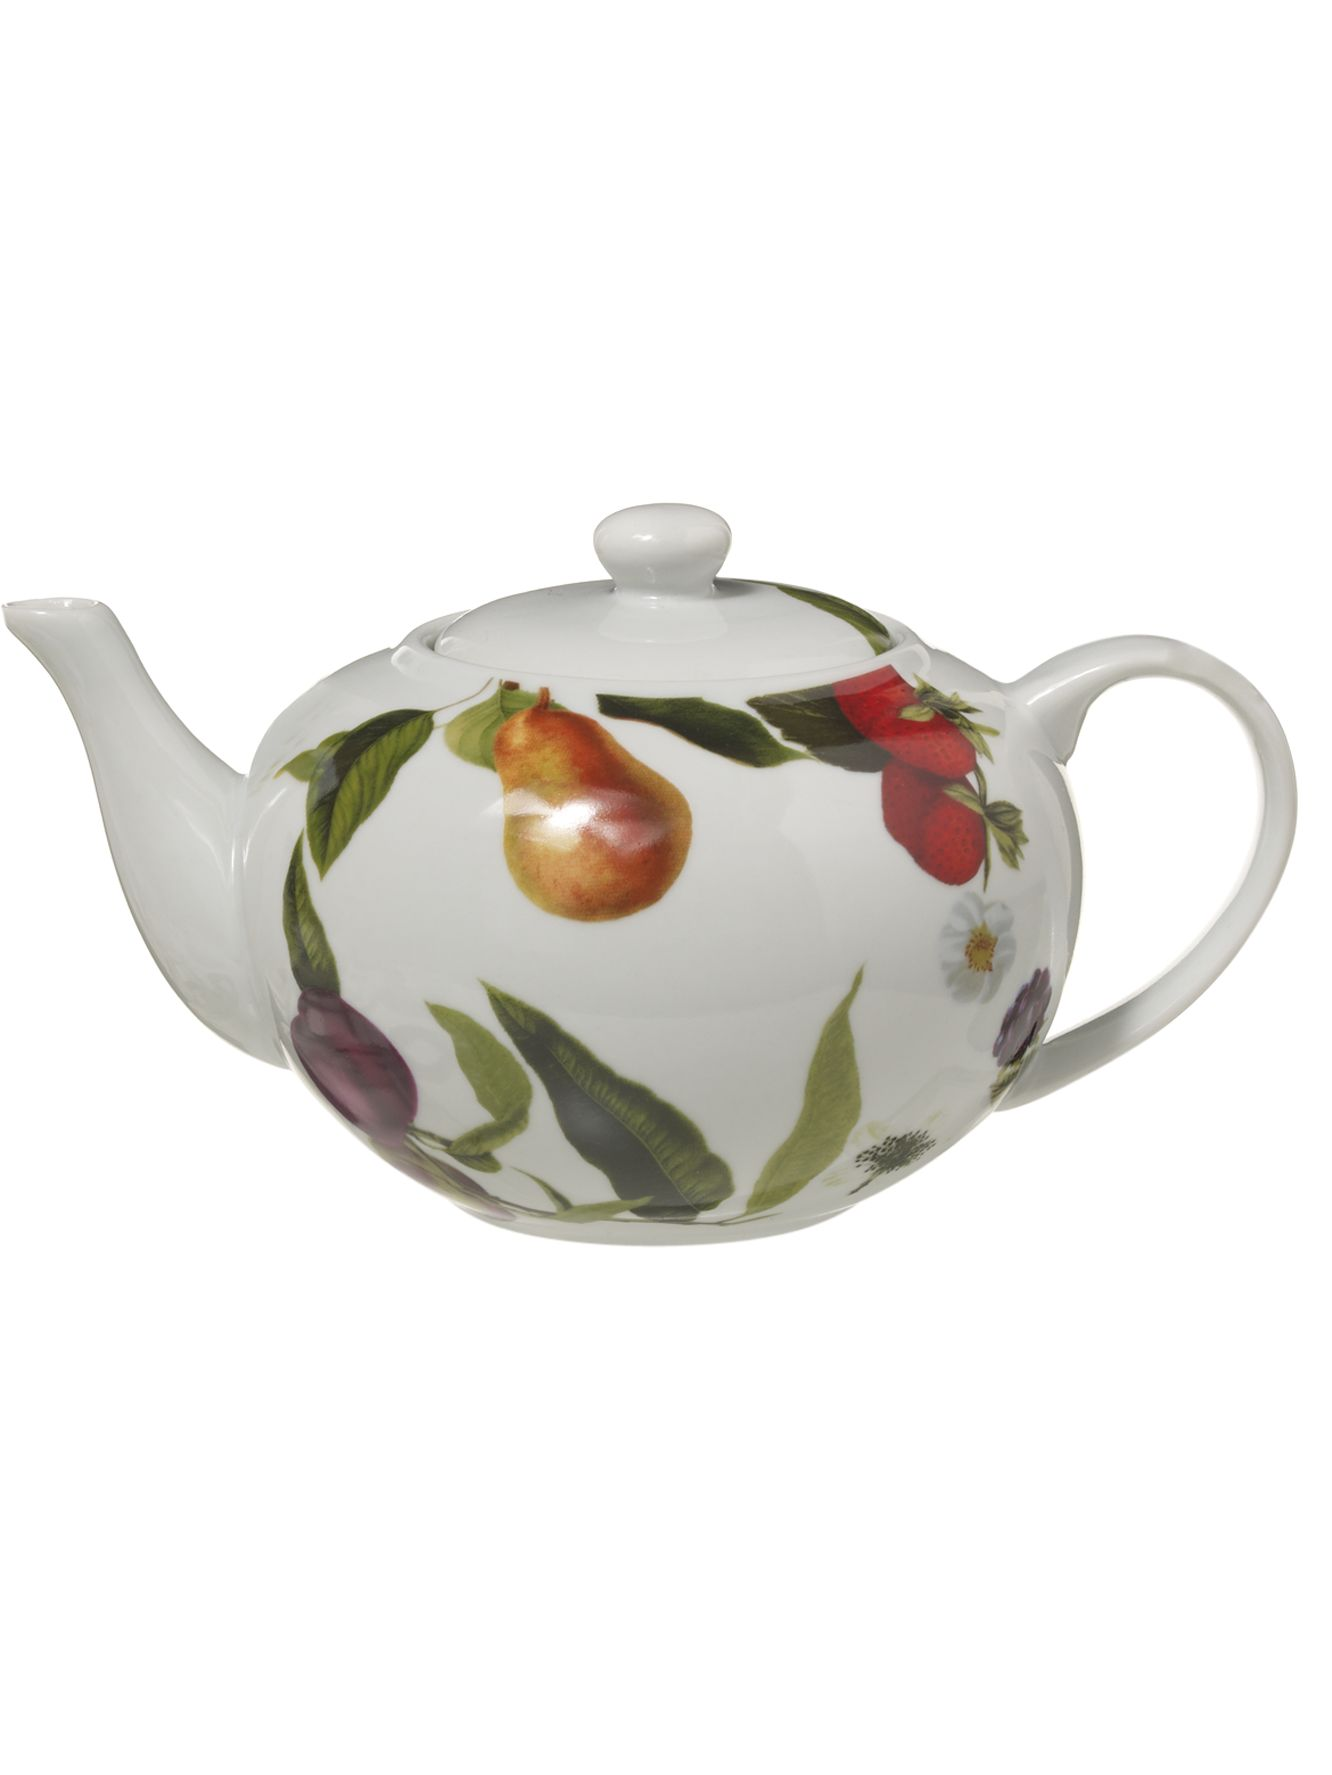 Botanical fruits teapot